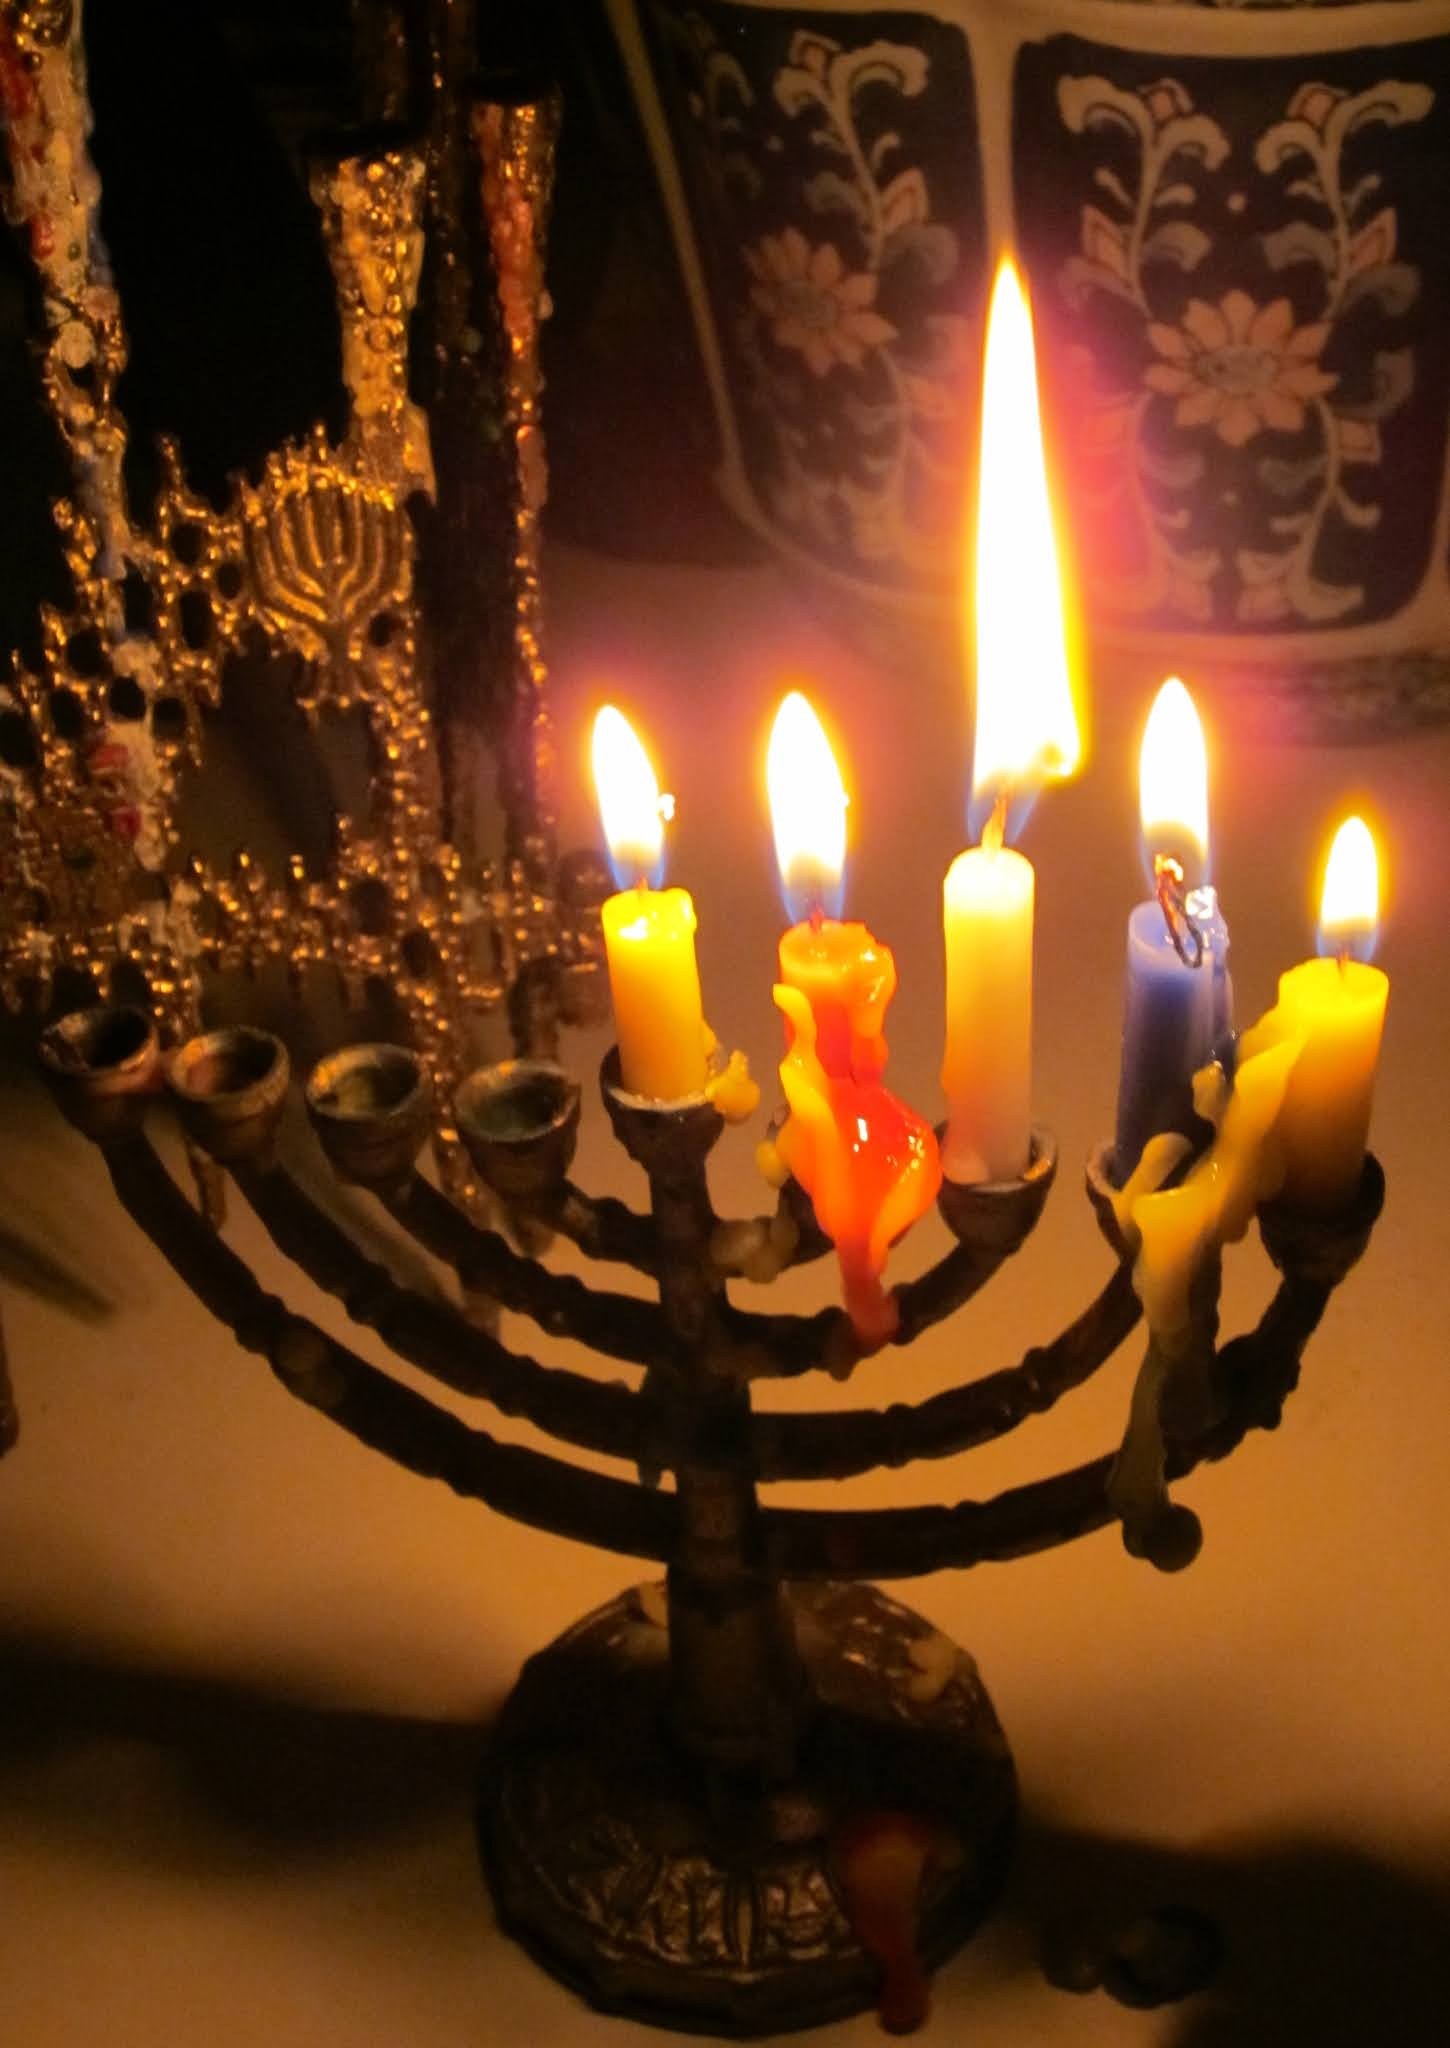 photo of a small traditional Chanukah menorah with shamash, first, second, third, and fourth candles lit